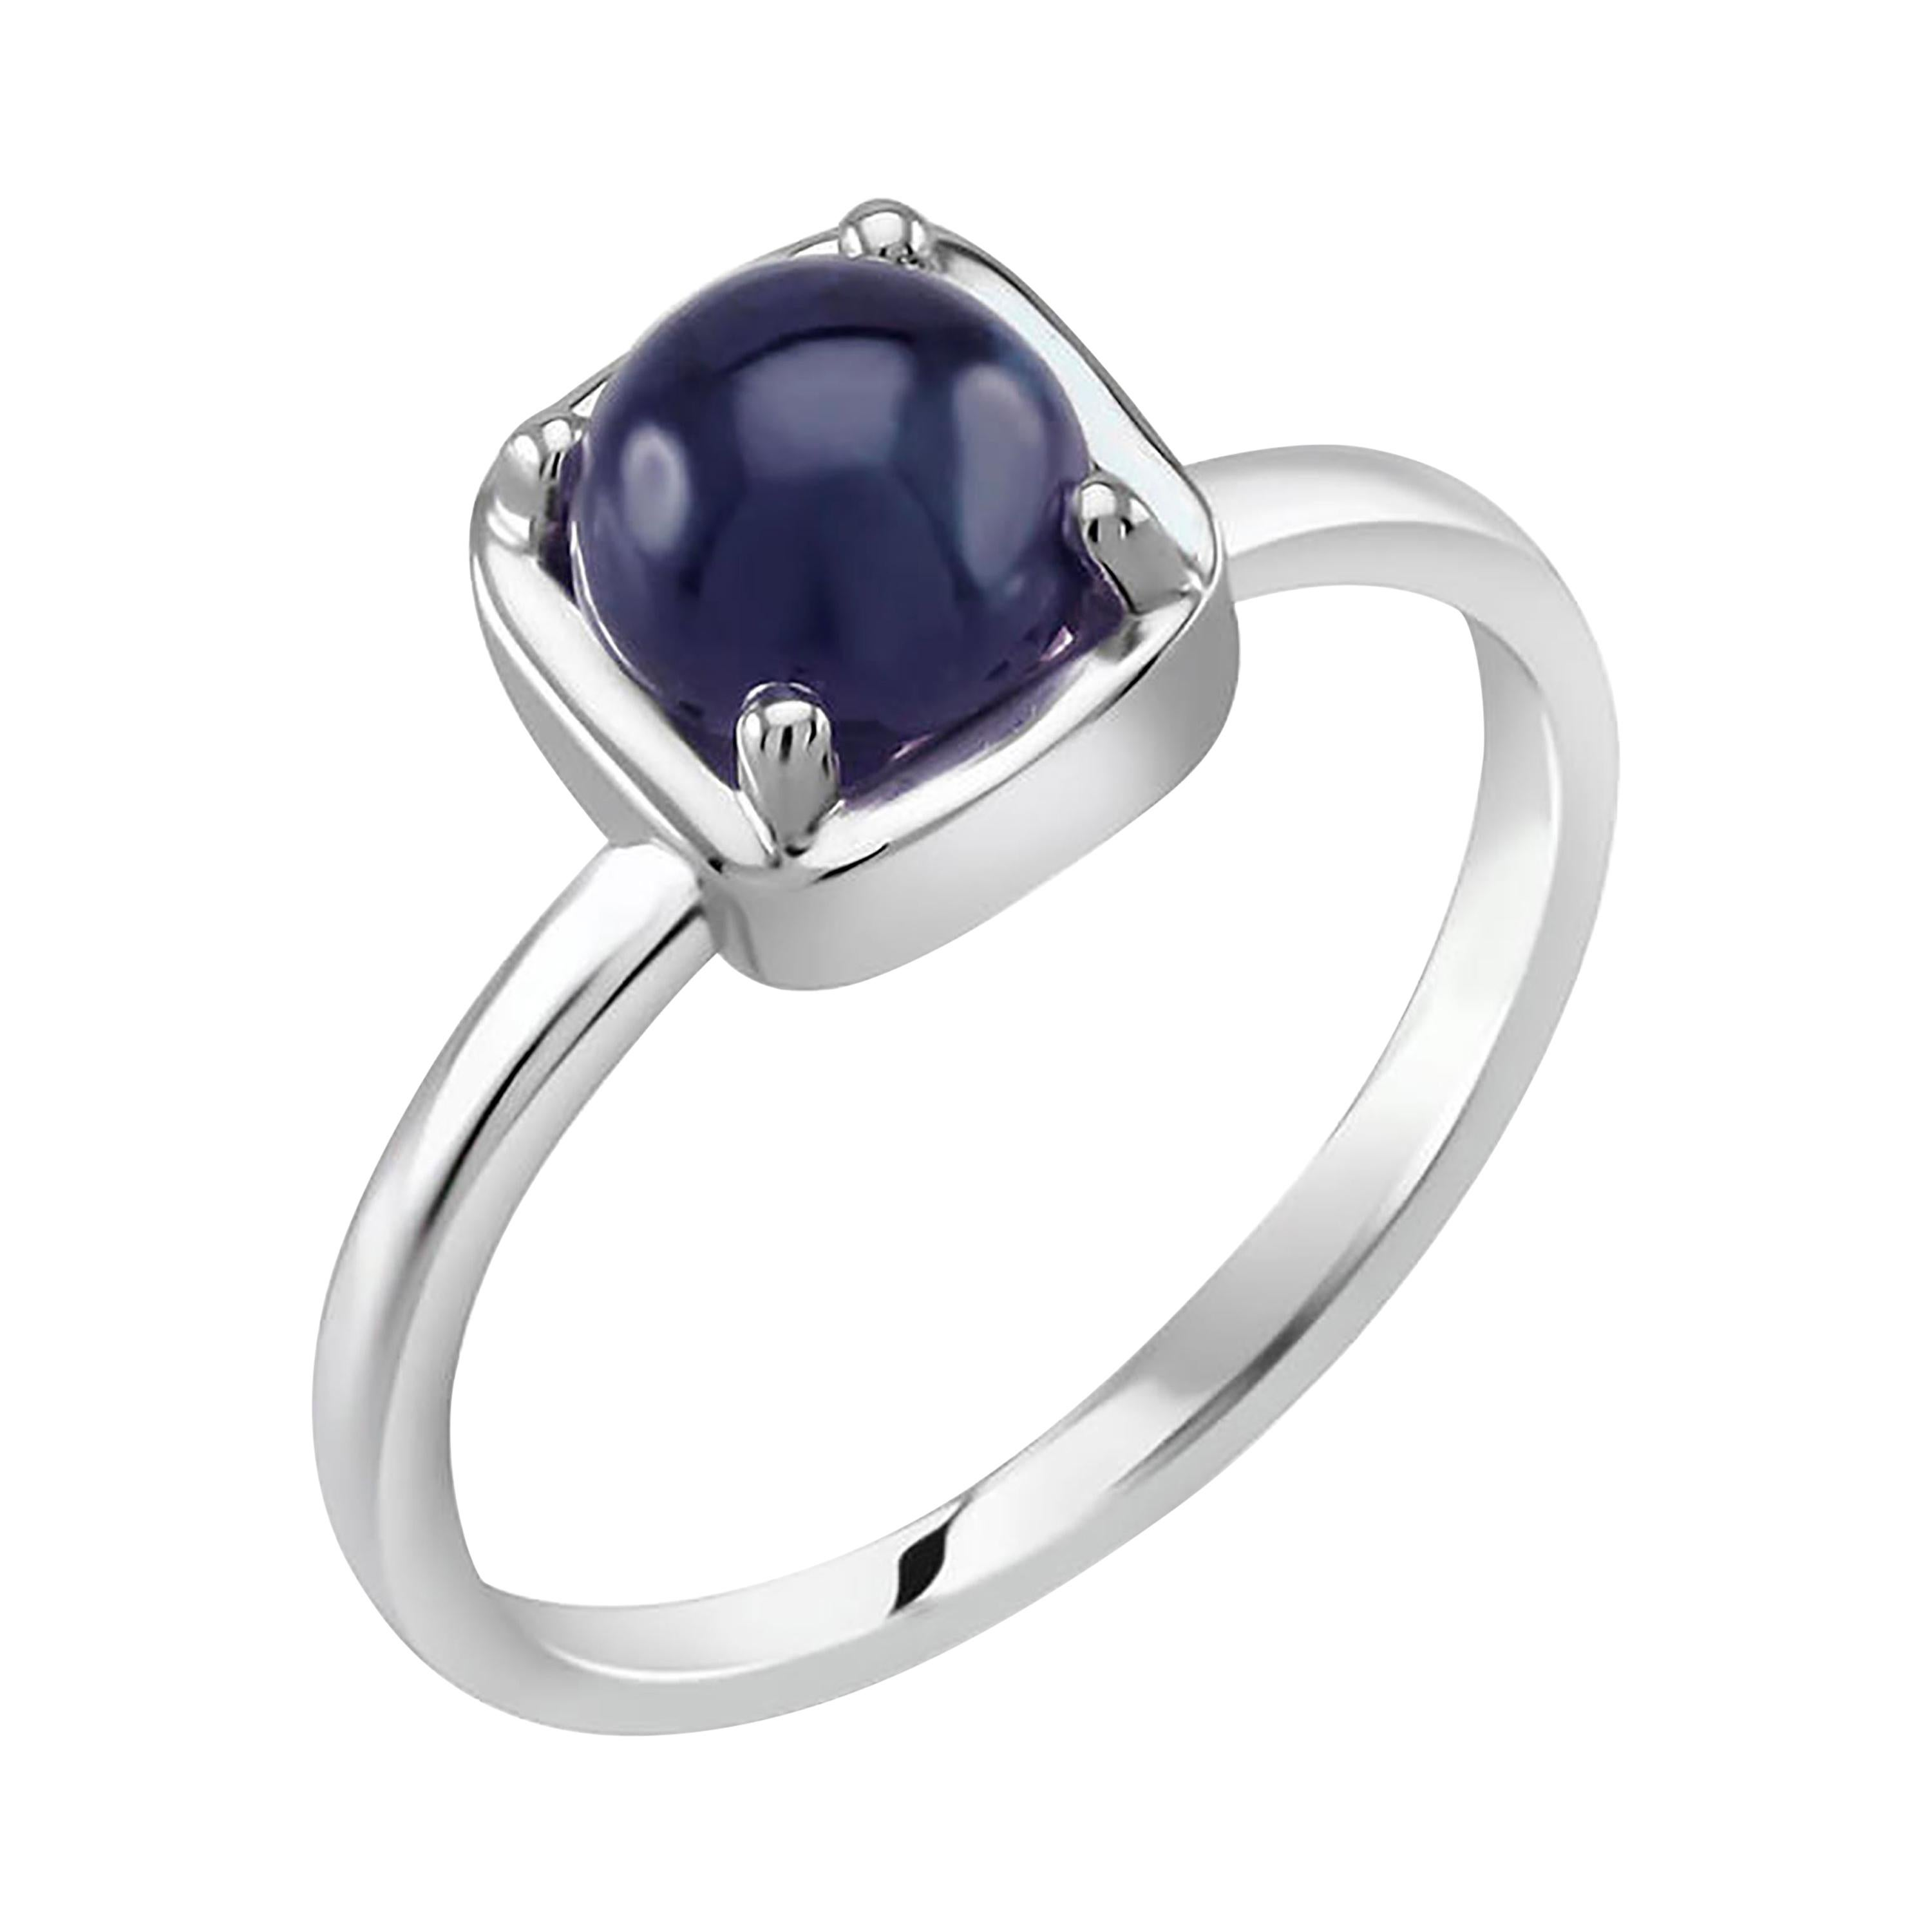 Cabochon Sapphire Solitaire Sterling Silver Ring White Gold Plate